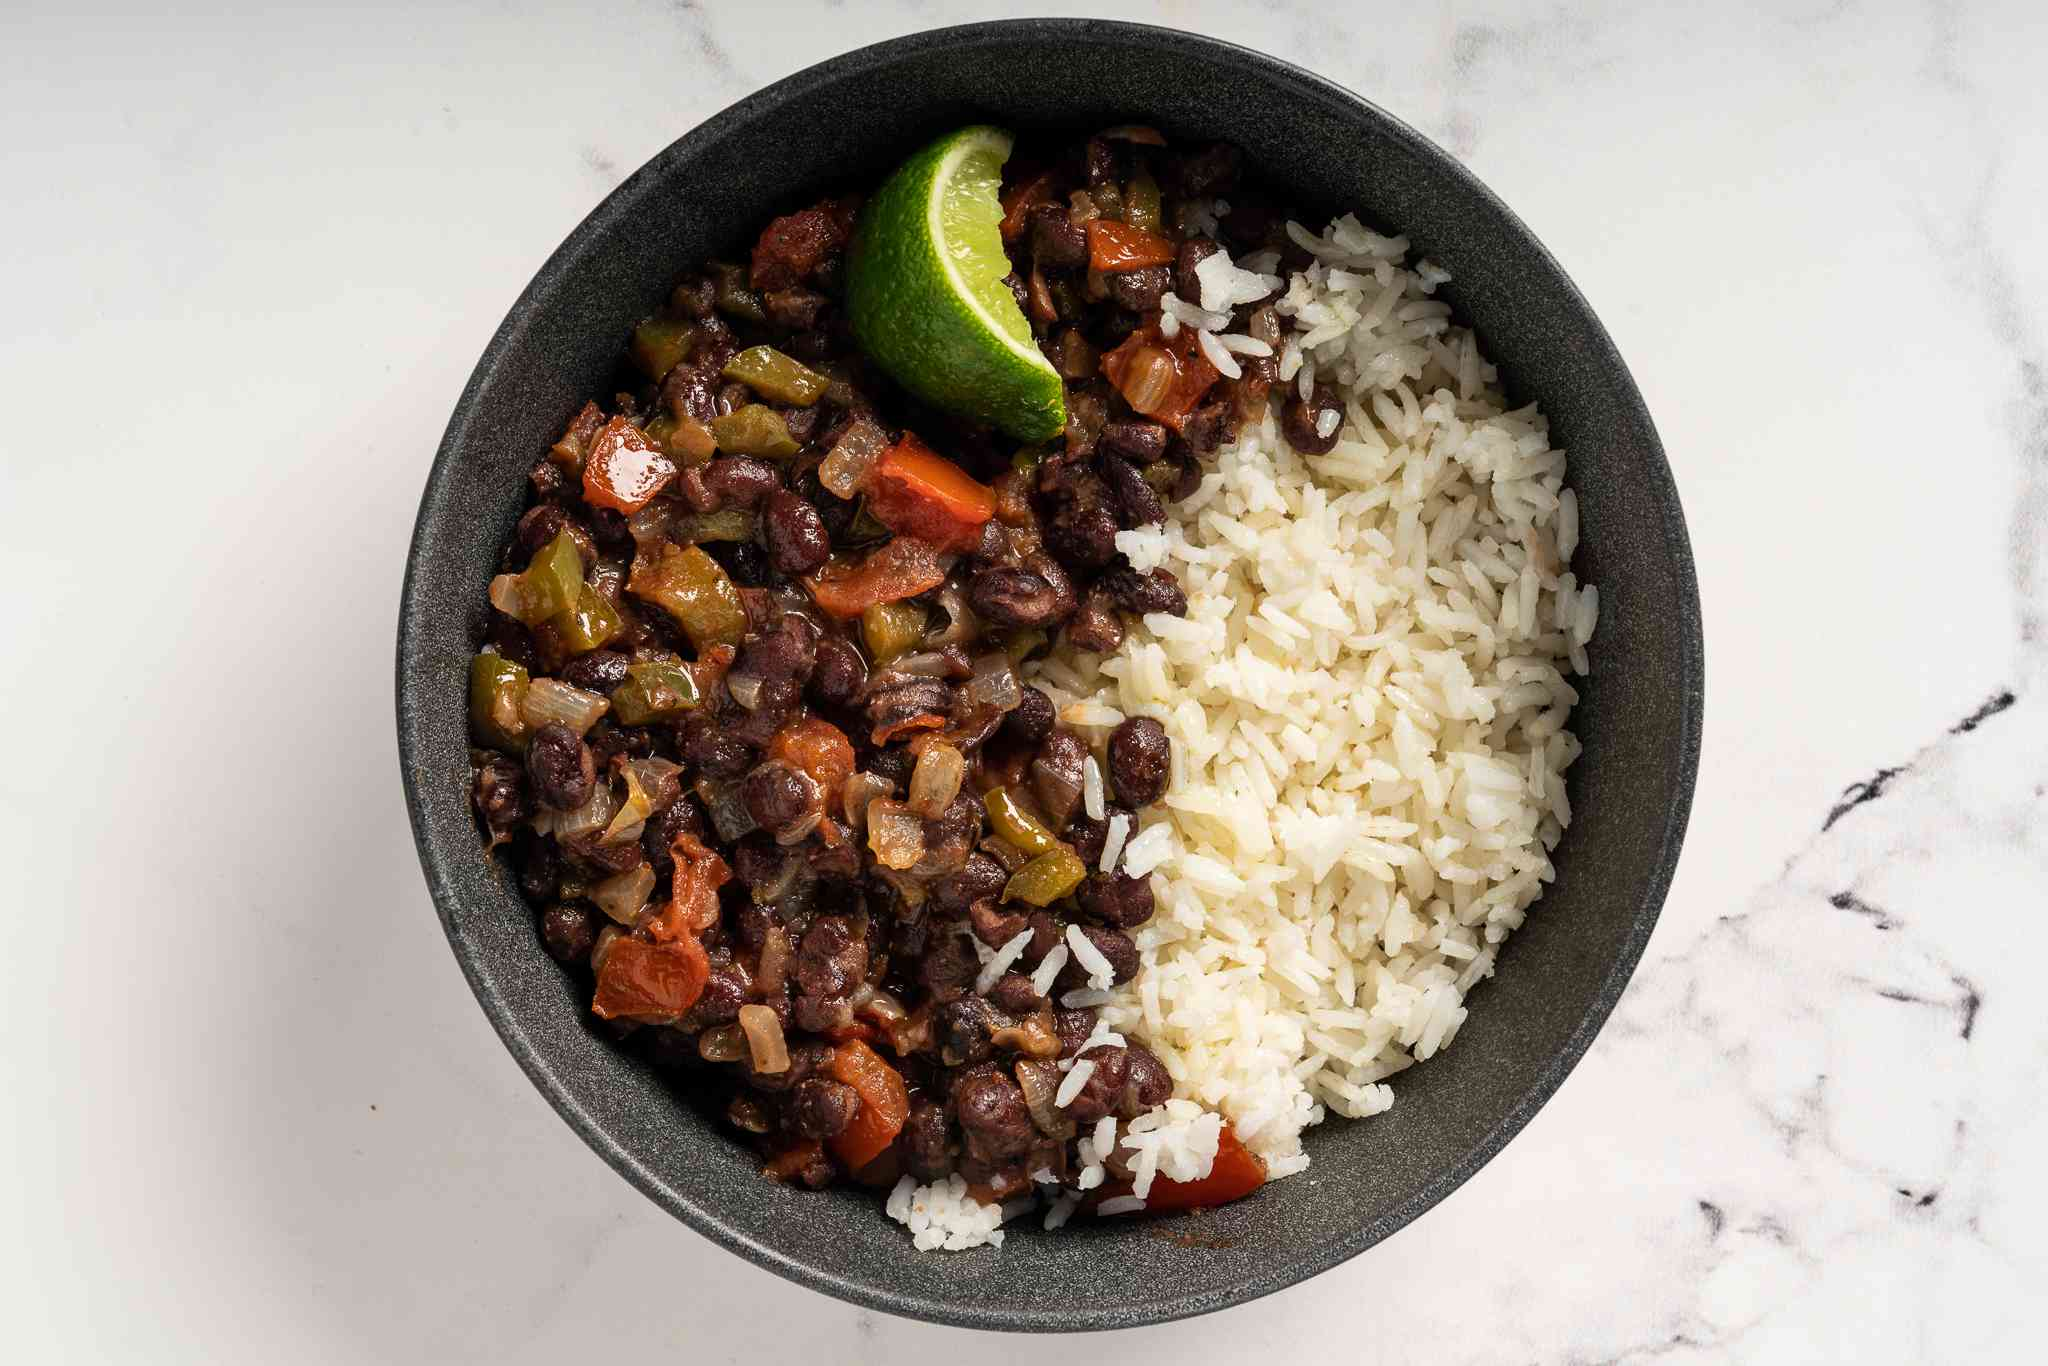 Basic Vegetarian Black Beans and Rice in a bowl